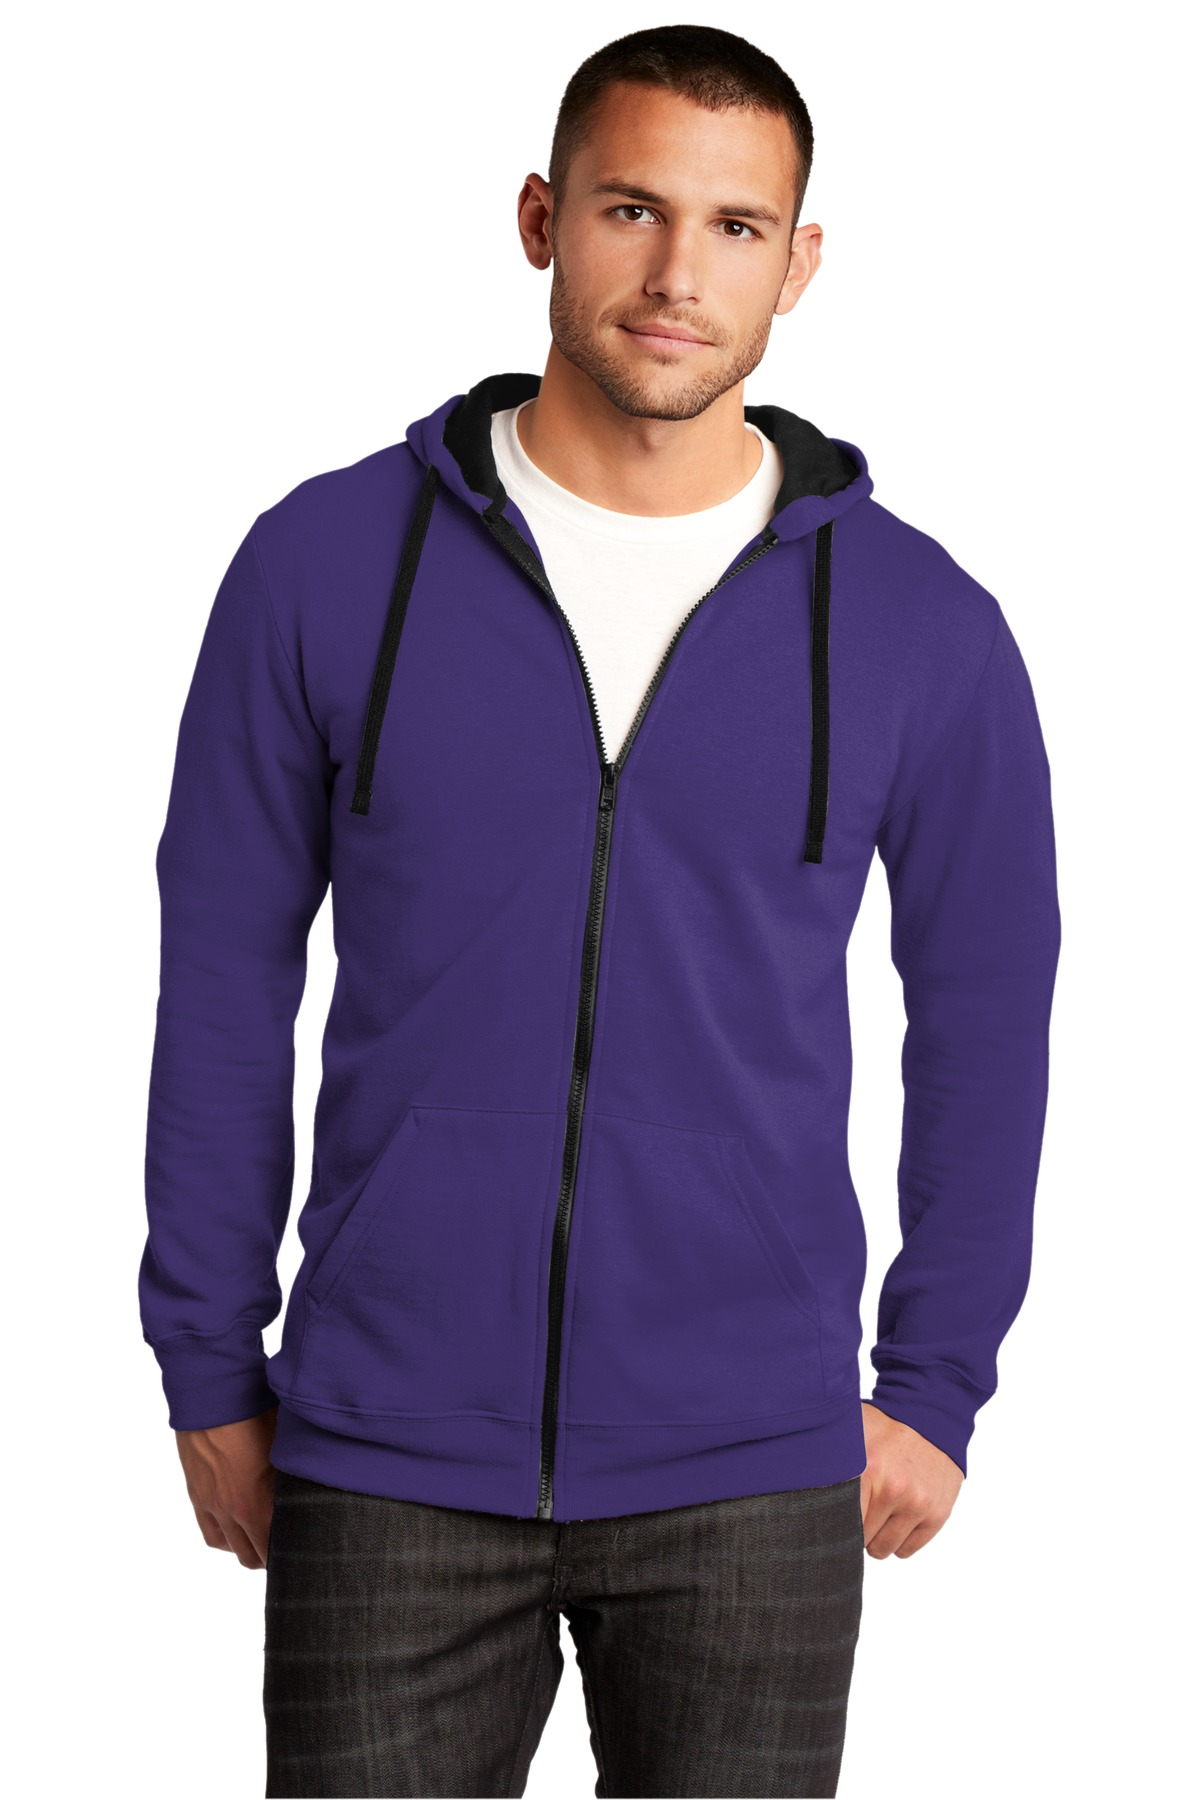 District ®  The Concert Fleece ®  Full-Zip Hoodie. DT800 - Purple